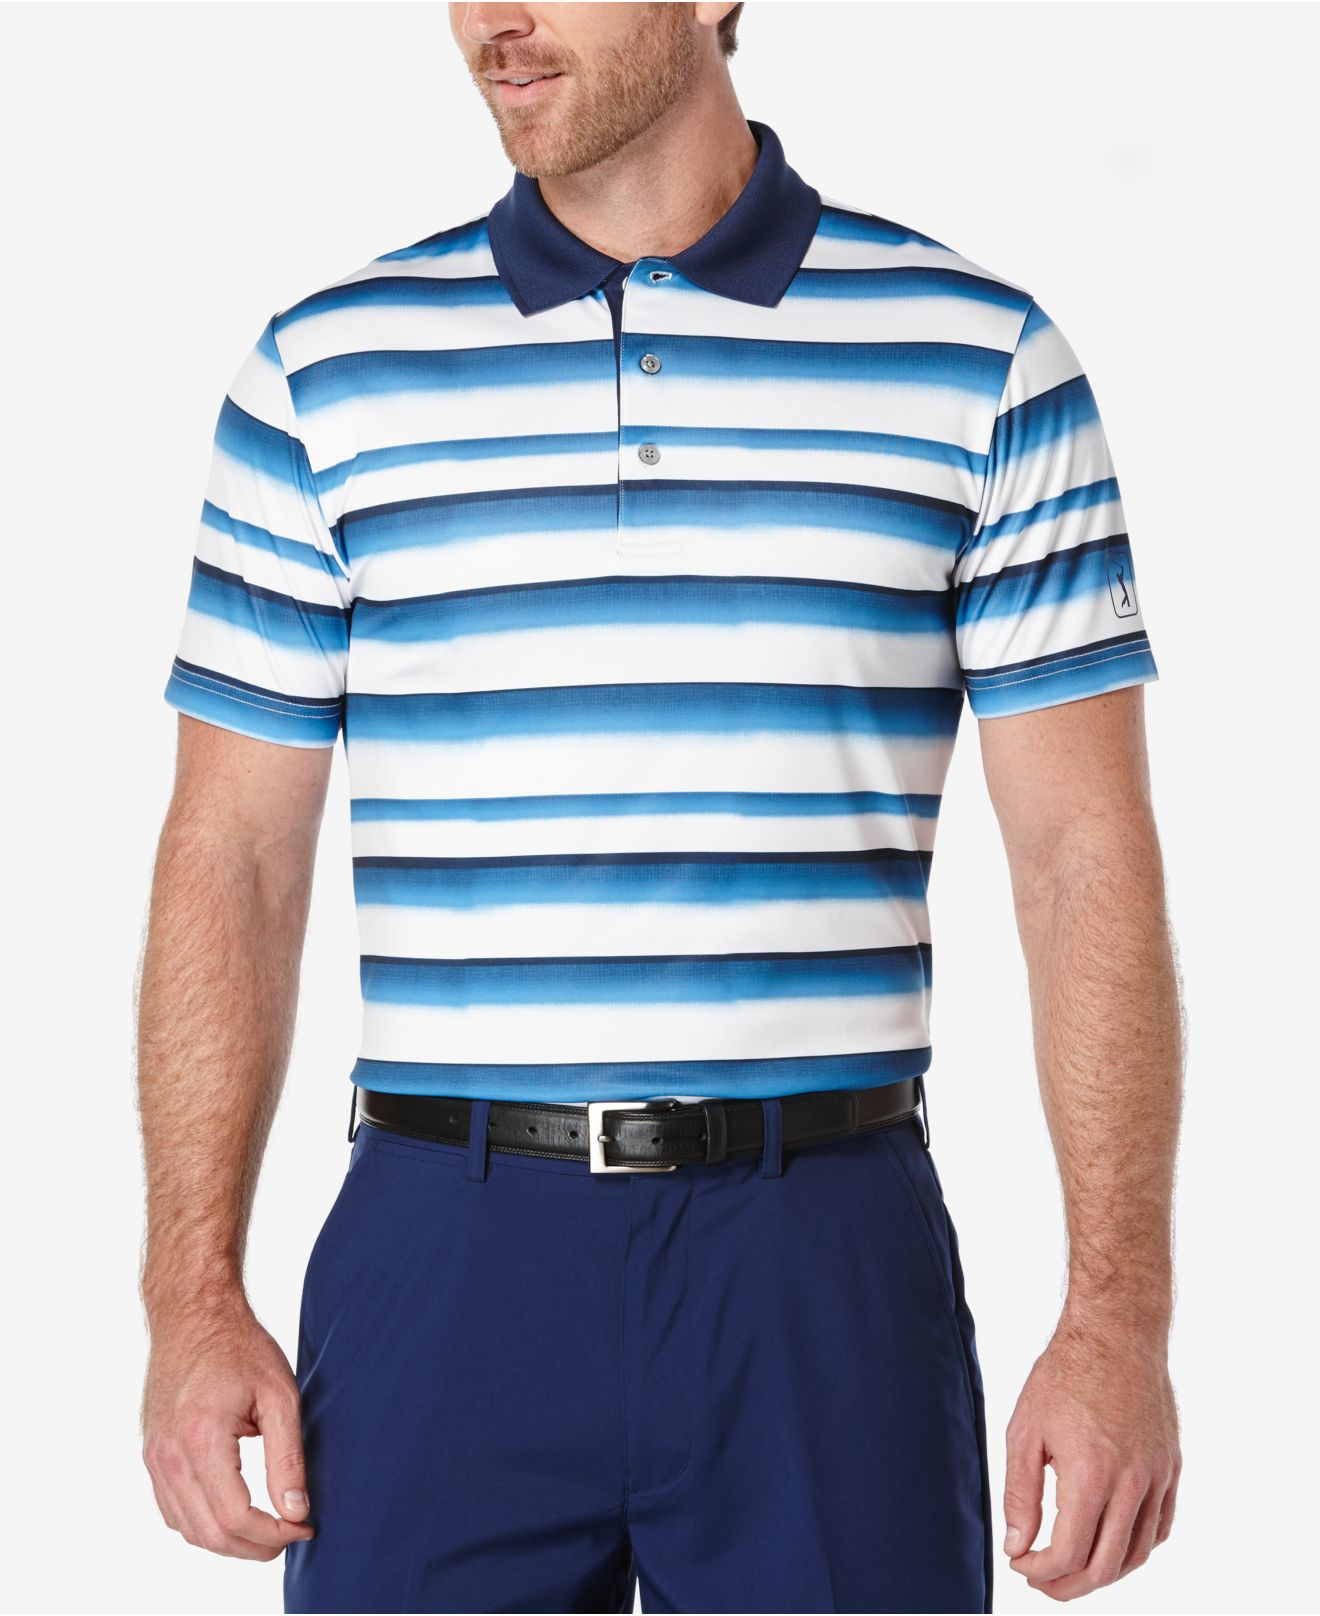 Pga Tour Polo Shirts Uk Sweater Jeans And Boots